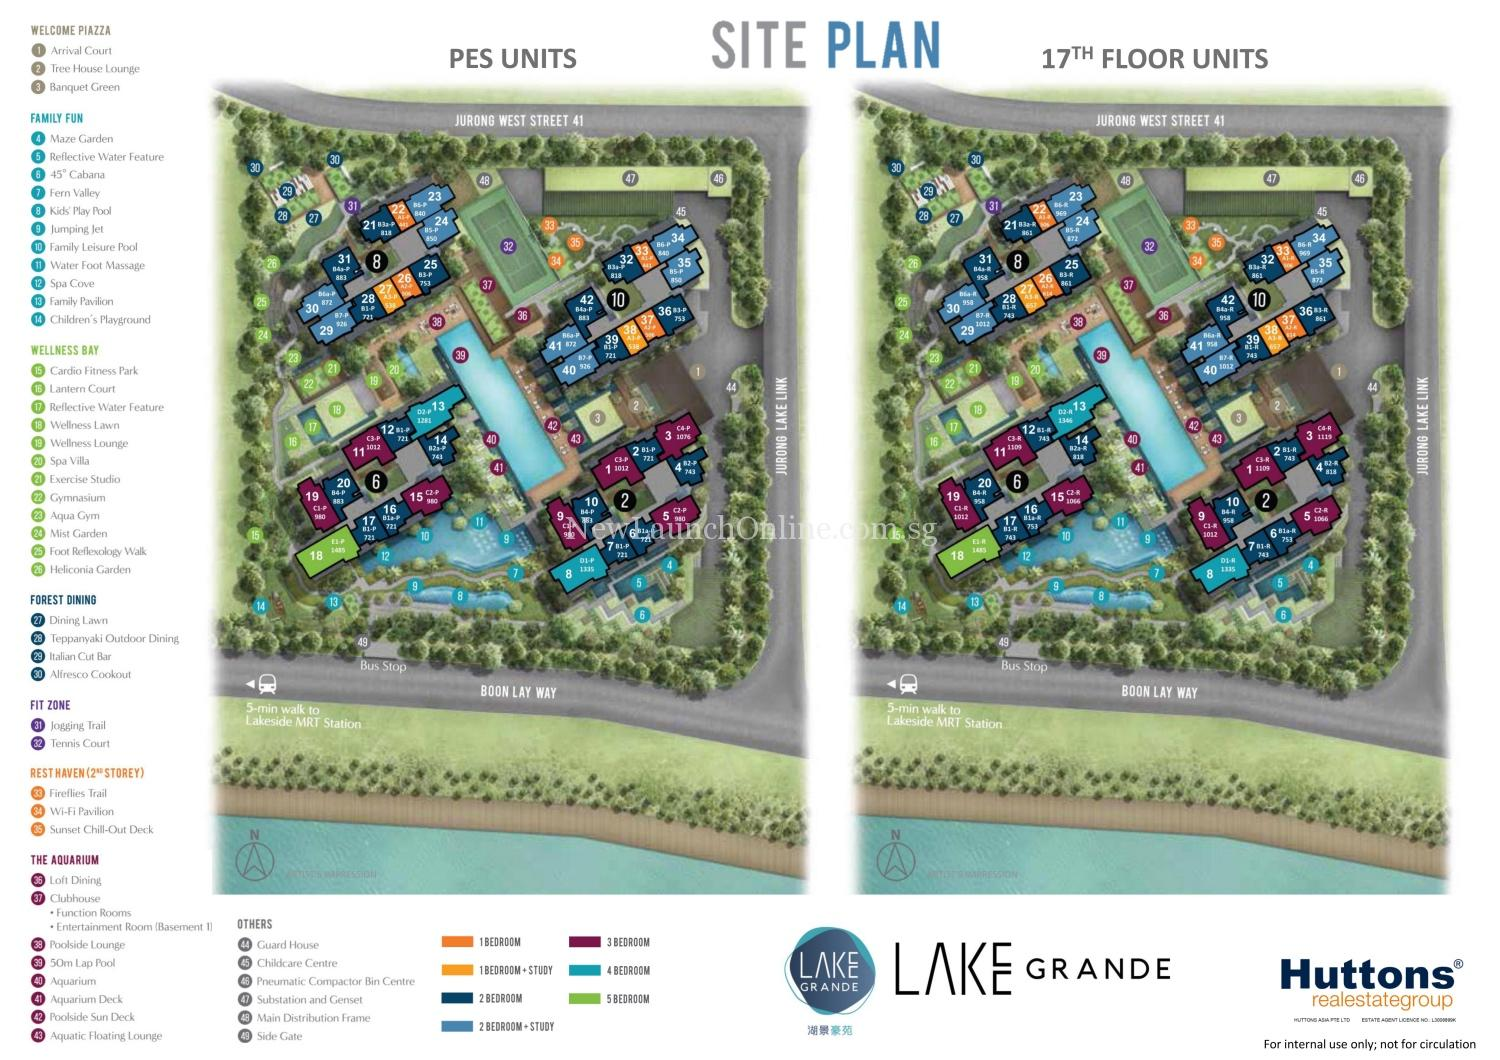 Lake Grade Site Plan (PES Unit & #17)